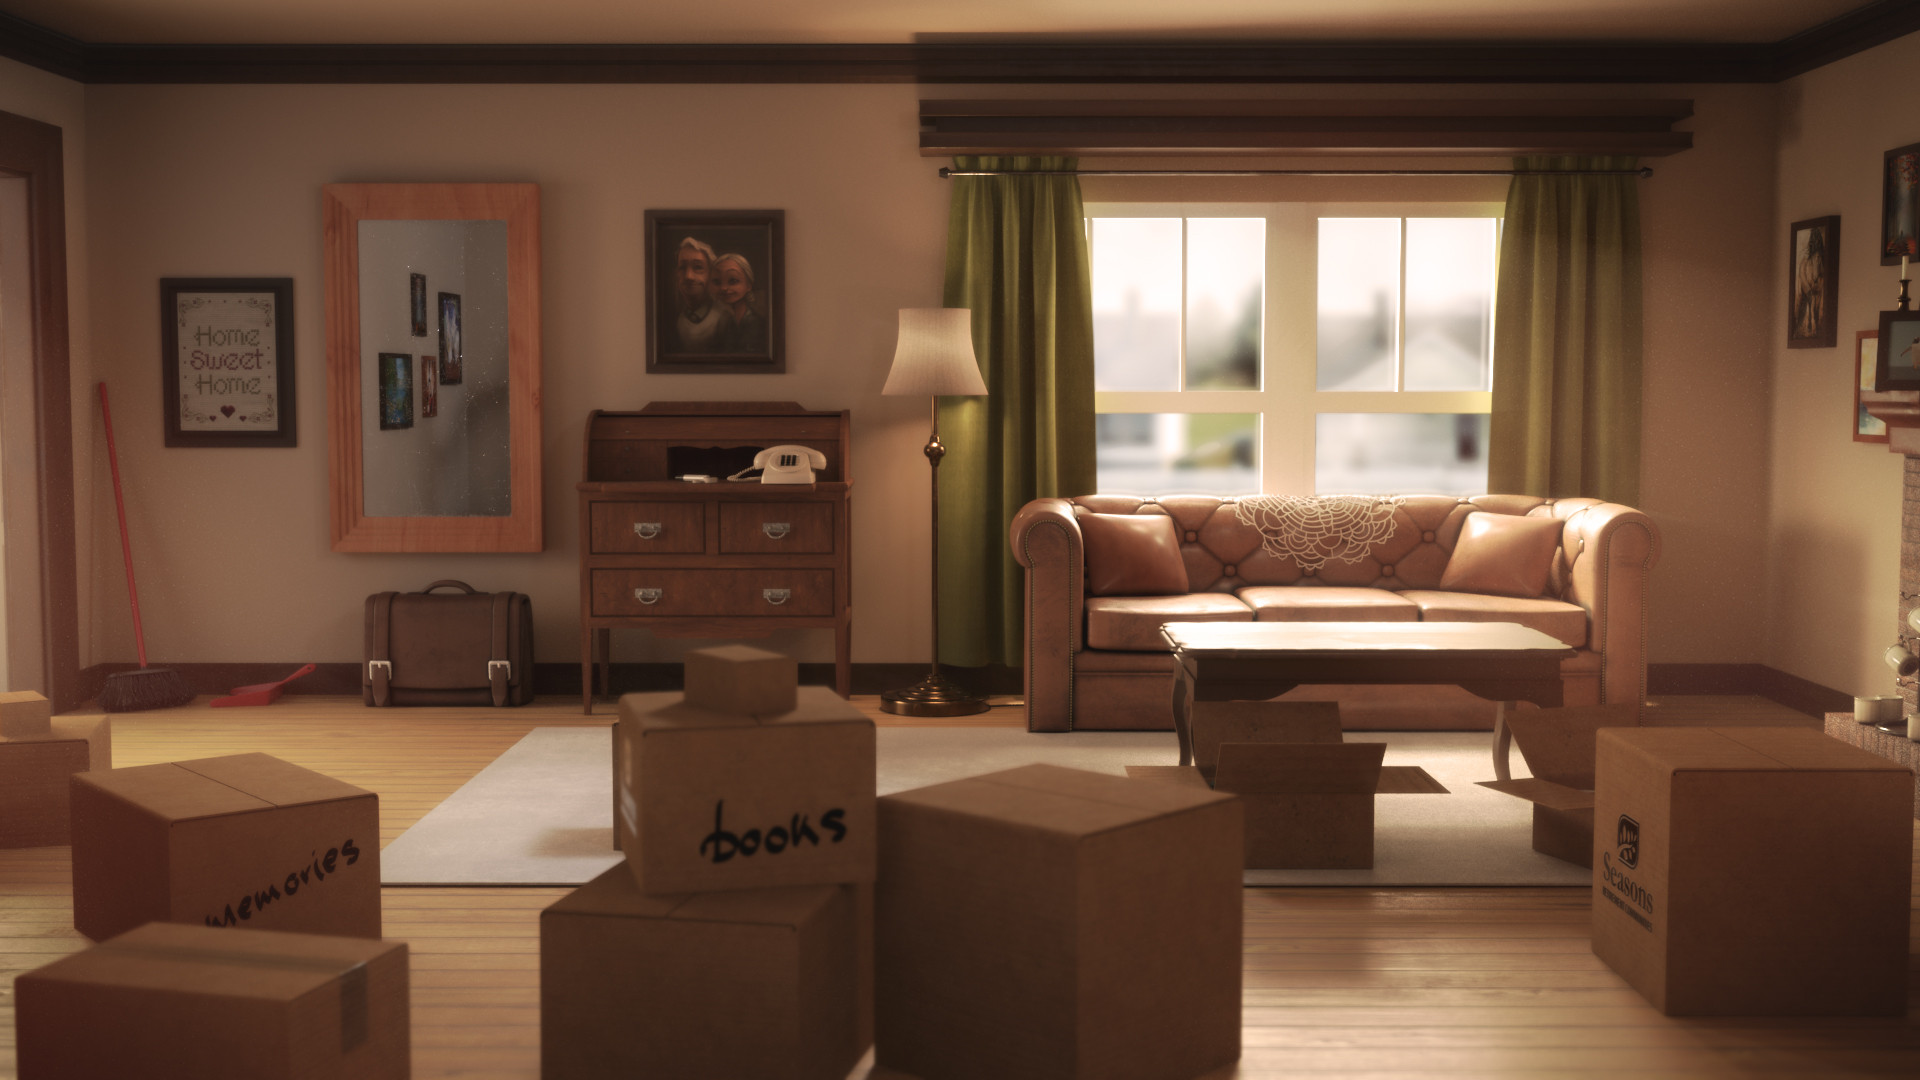 HSH_IntHouse_Render